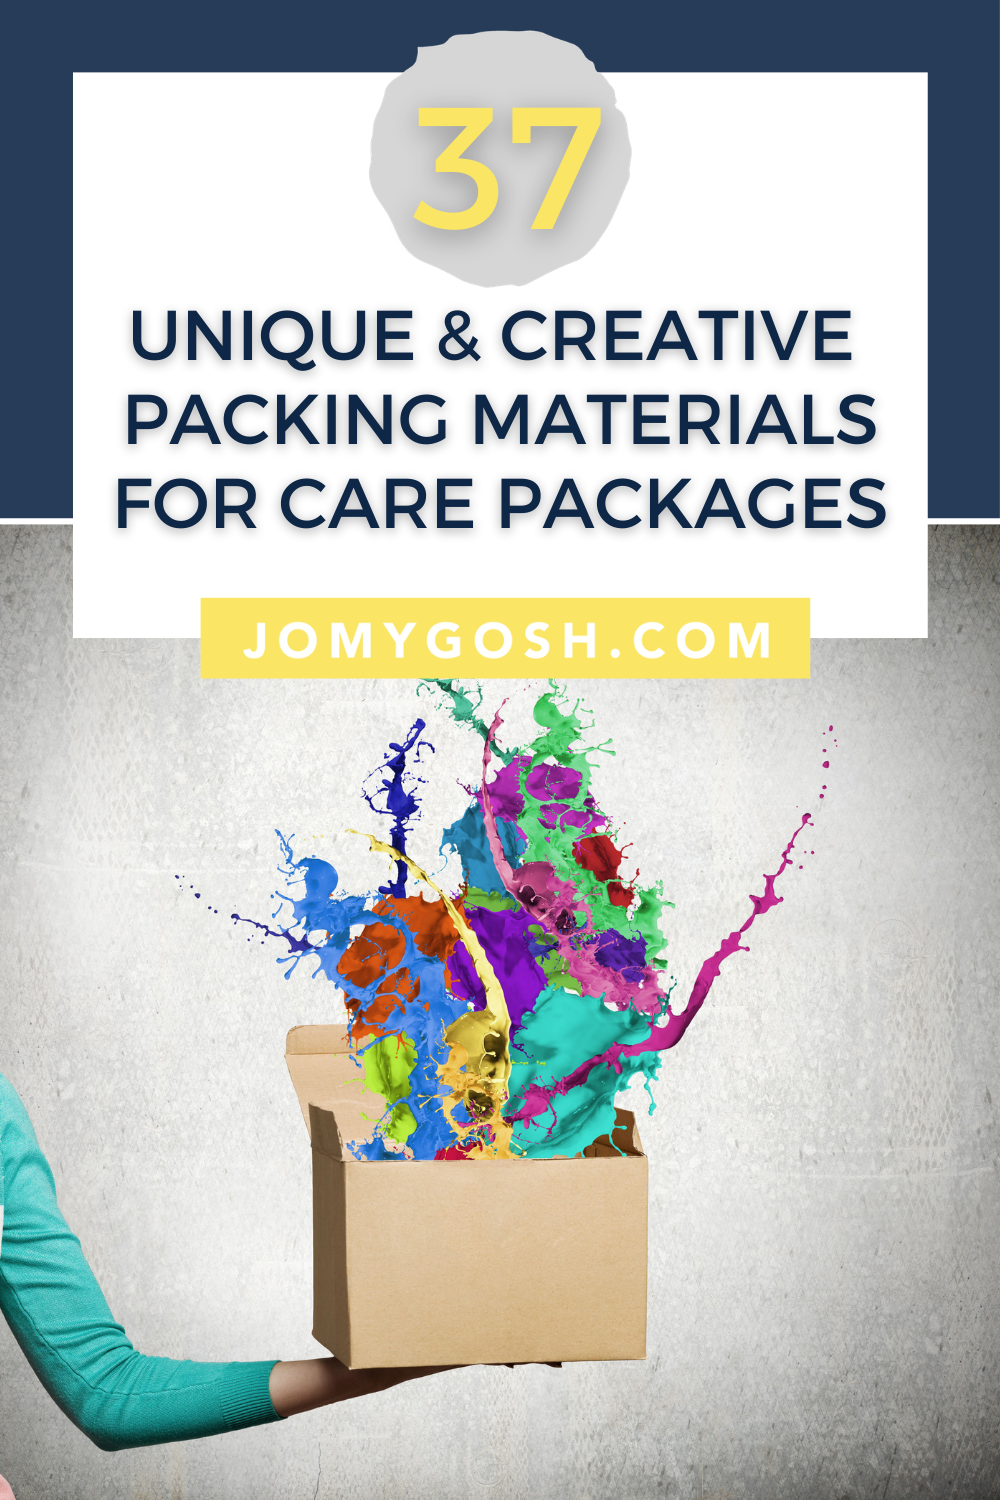 Packaging materials don't have to be expensive or boring. Here's to get the most bang out of your shipping costs and care package impact using interesting and available packing materials #carepackage #carepackages #packingmaterial #packagingmaterial #military #missionary #missionaries #college #collegestudent #sendmail #sendmoremail #happymail